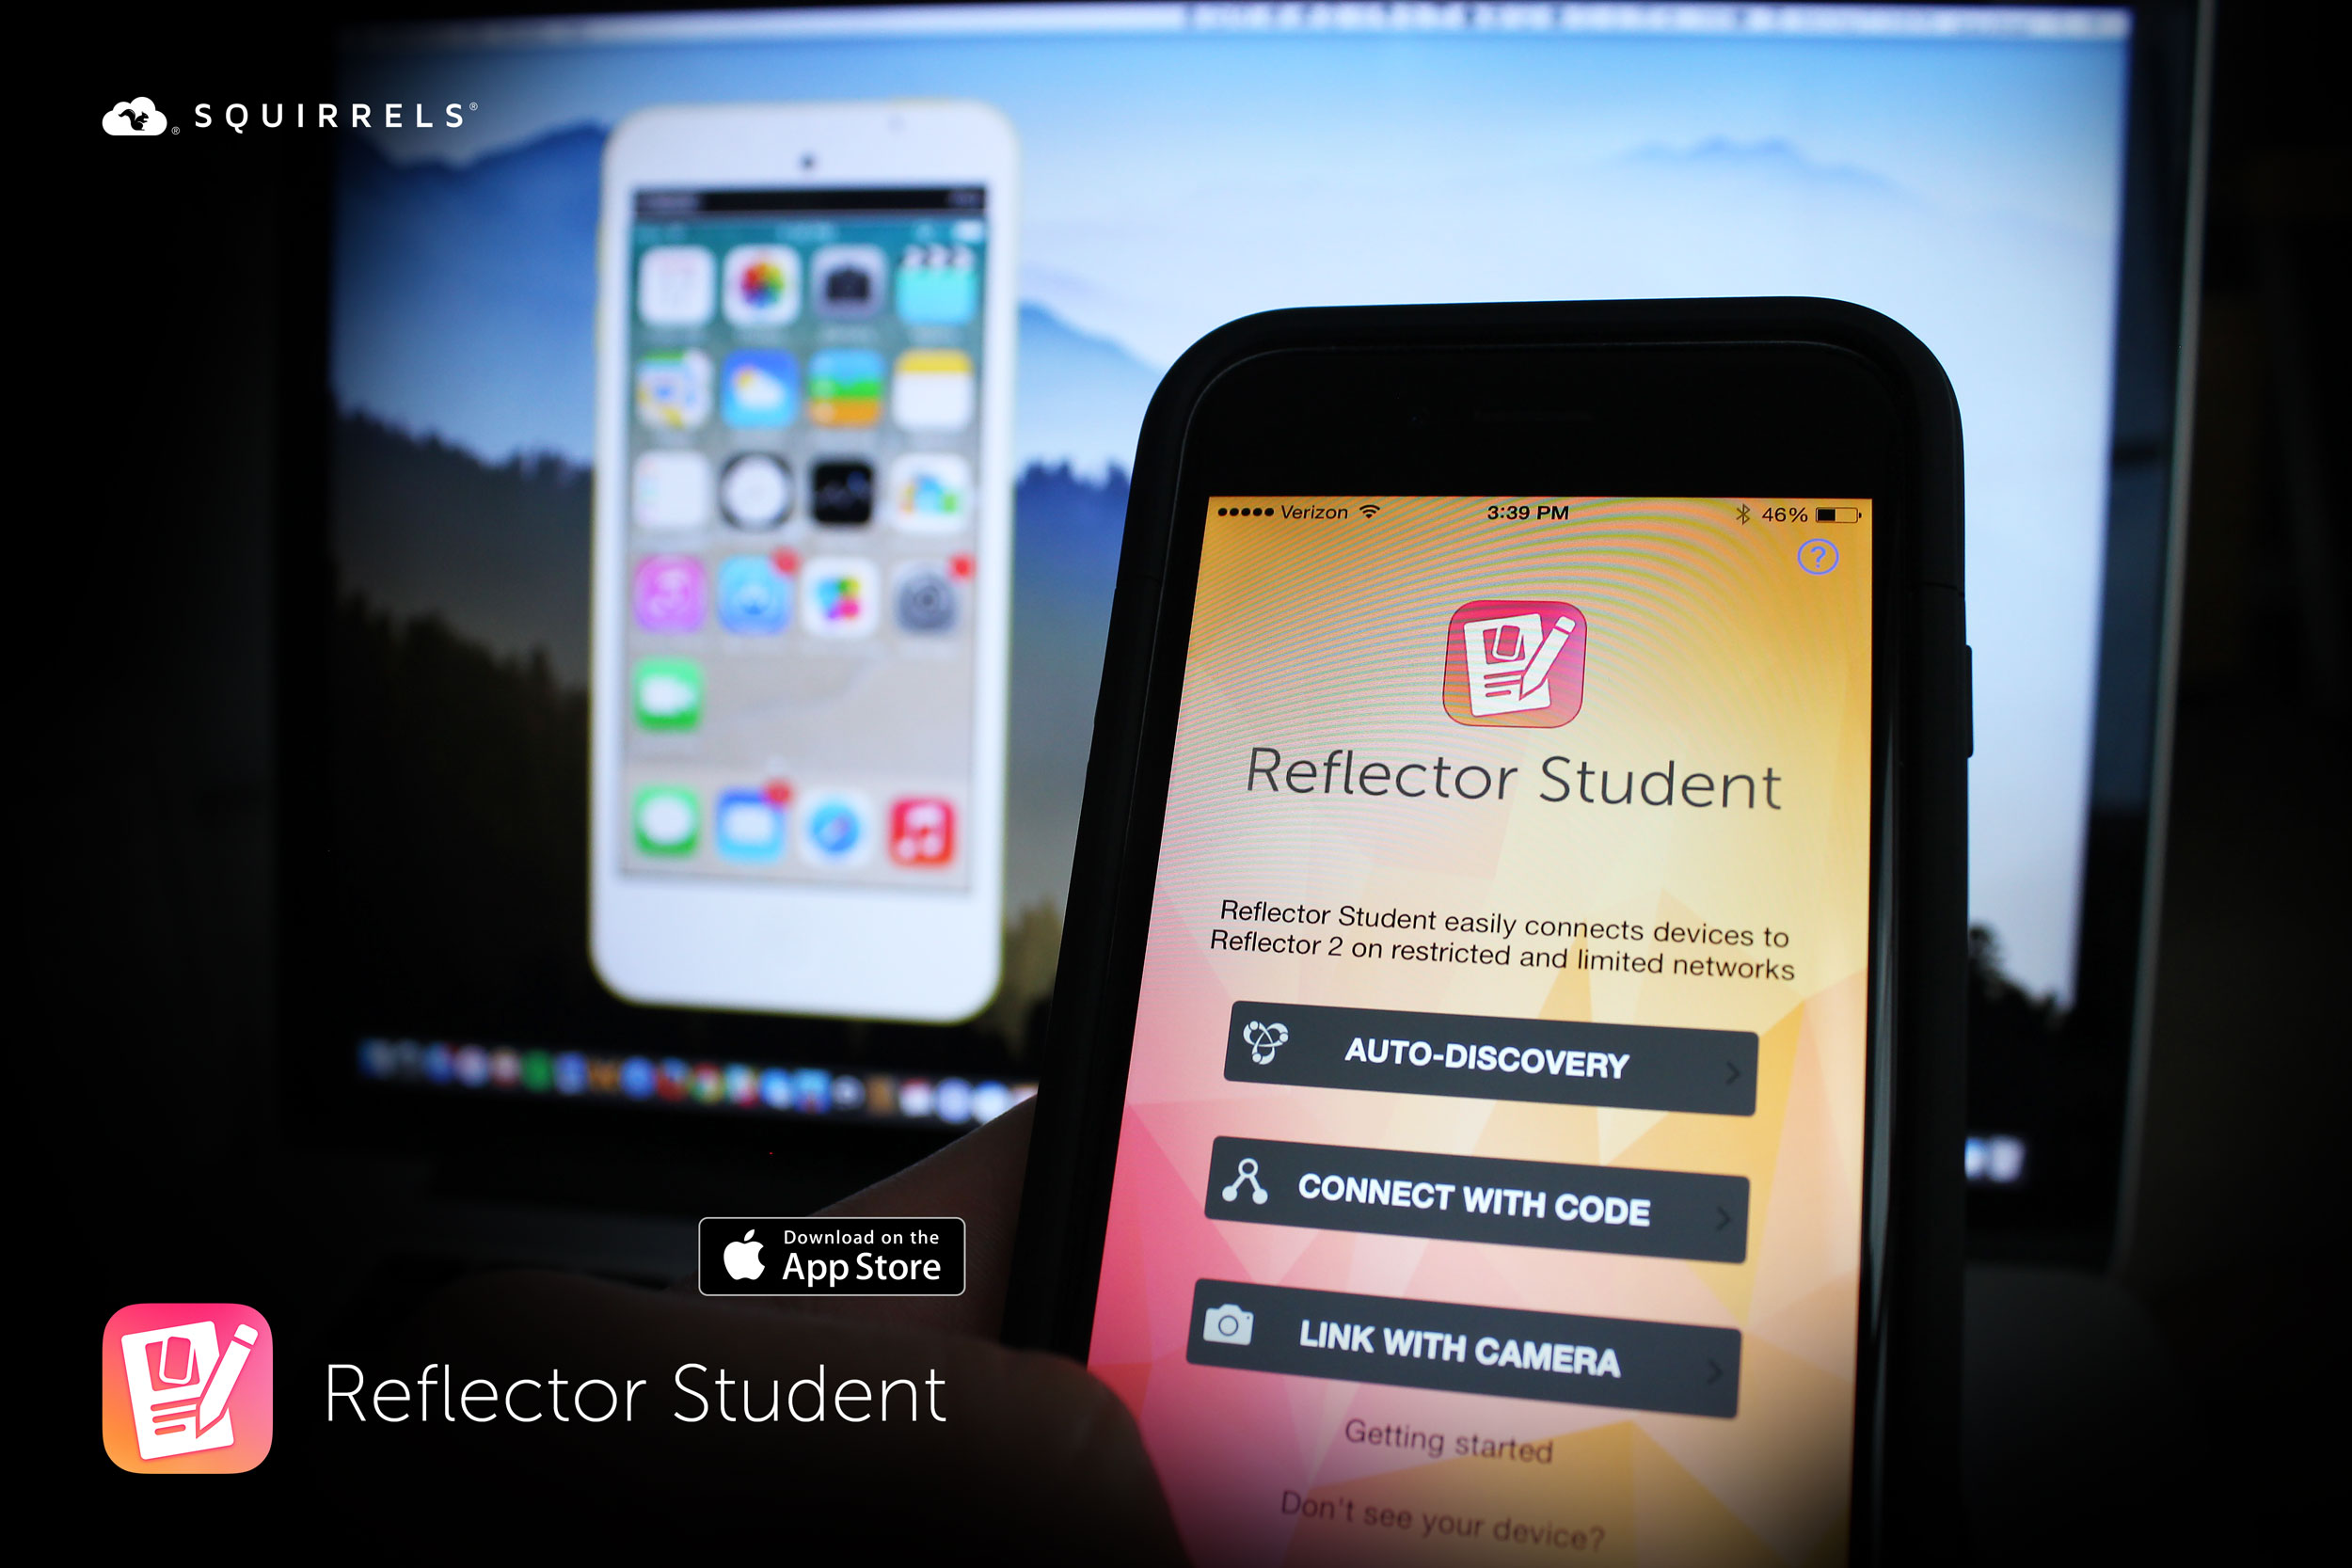 Reflector Student